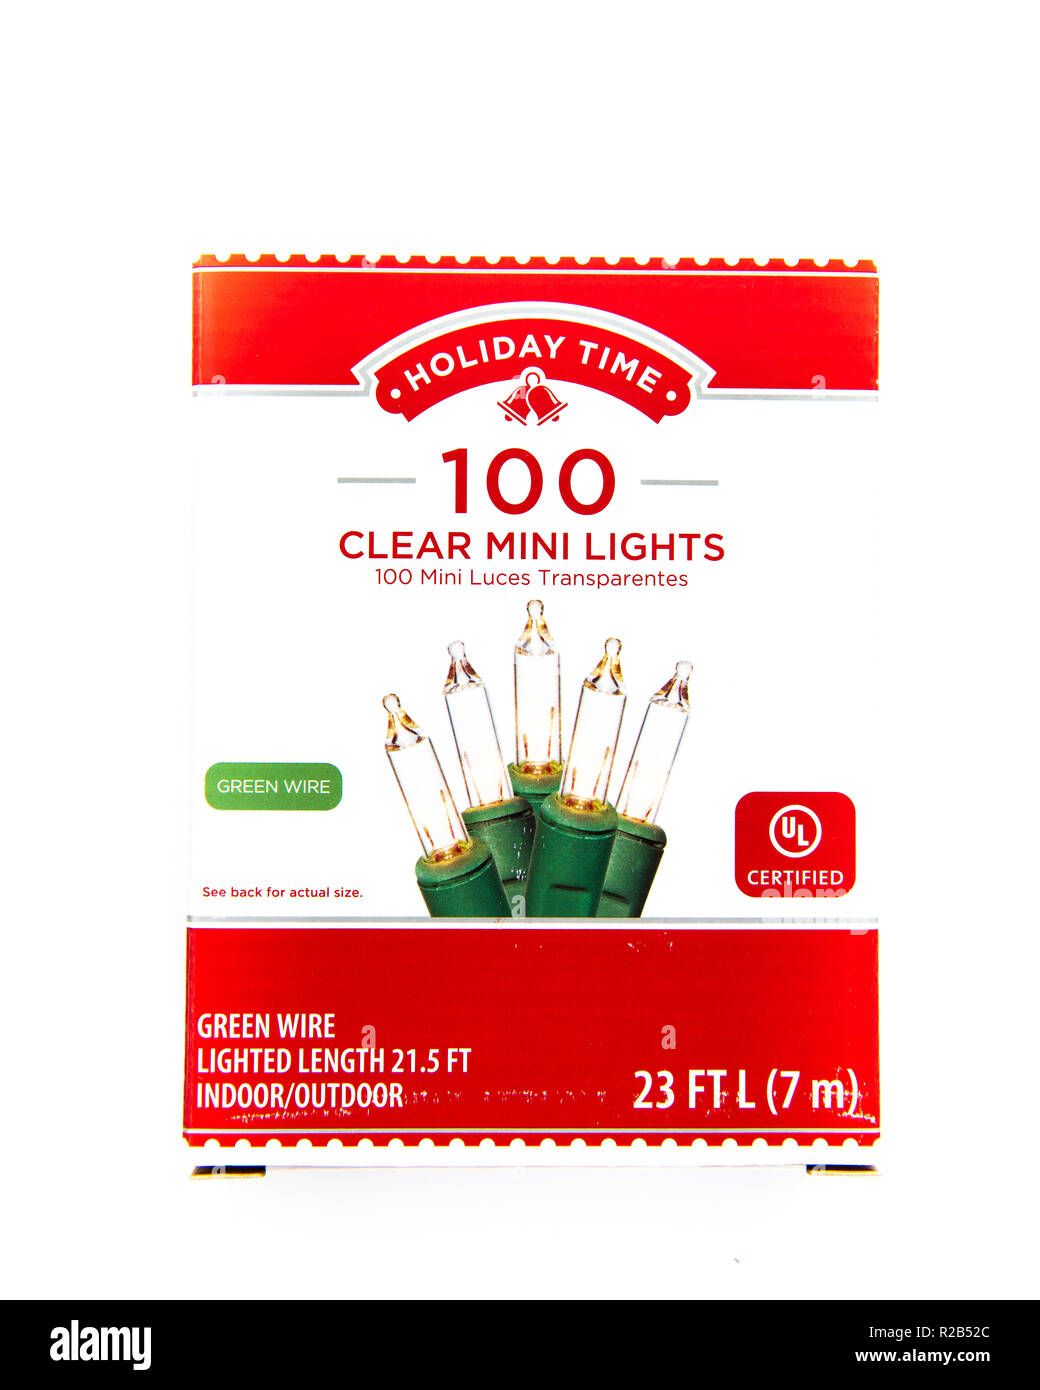 Christmas Lights Cut Out Stock Images Pictures Alamy Mini Xmas Wiring Diagram A Box Of Holiday Time Clear 100 On Green Wire